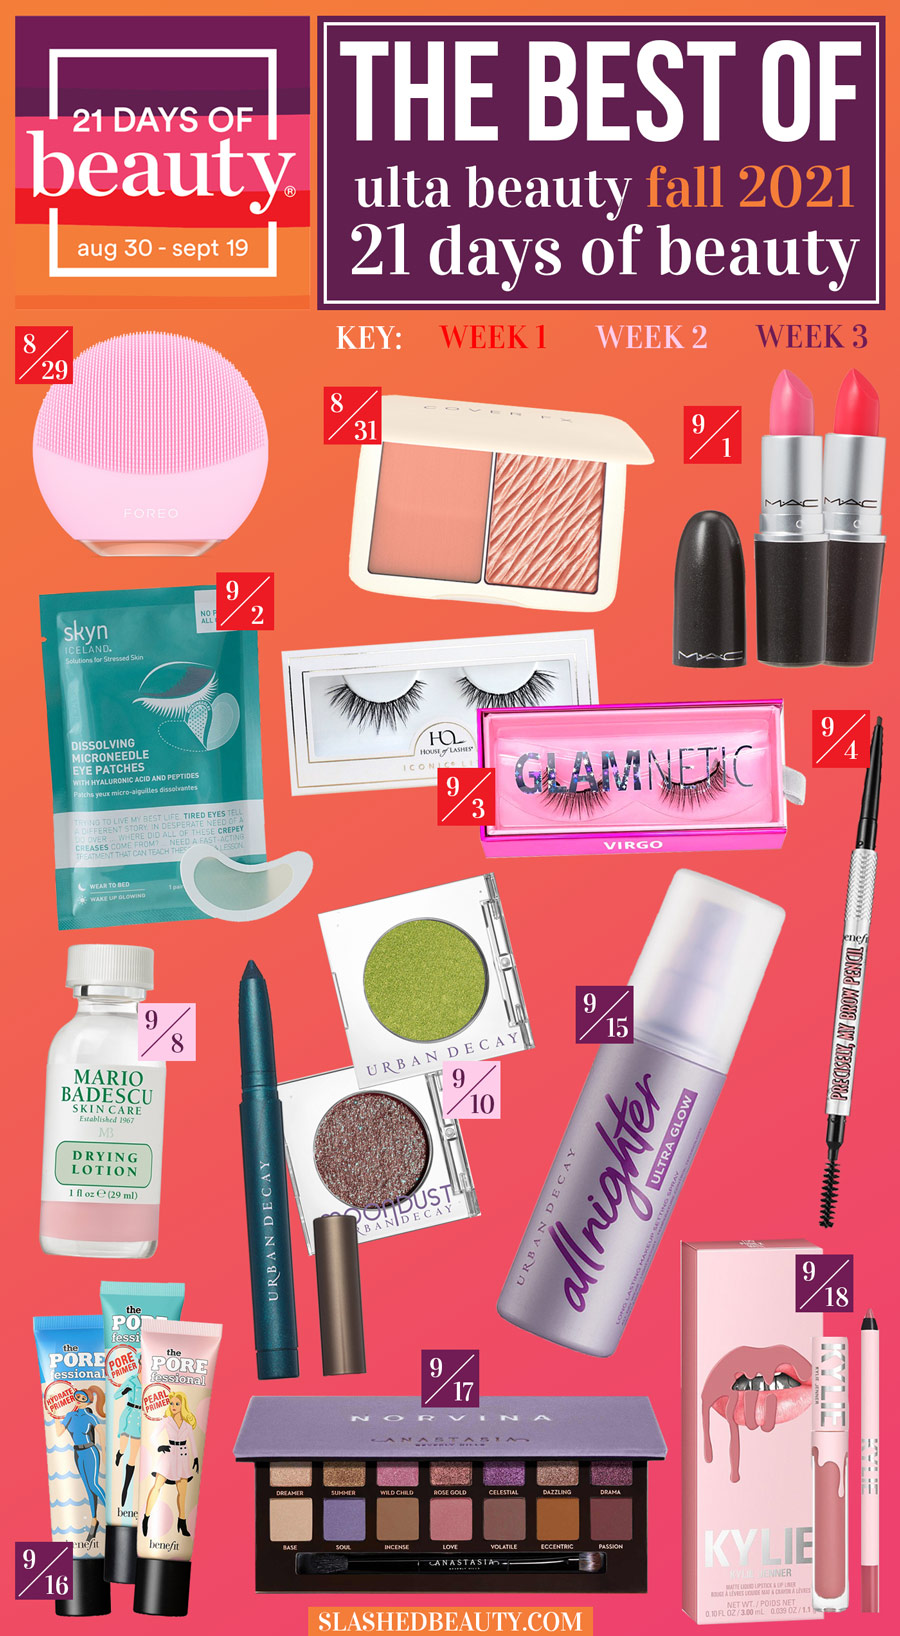 (Collage of Beauty Products) The Best of Ulta Beauty 21 Days of Beauty 2021 Fall Sale | 21 Days of Beauty Sale Recommendations | Slashed Beauty